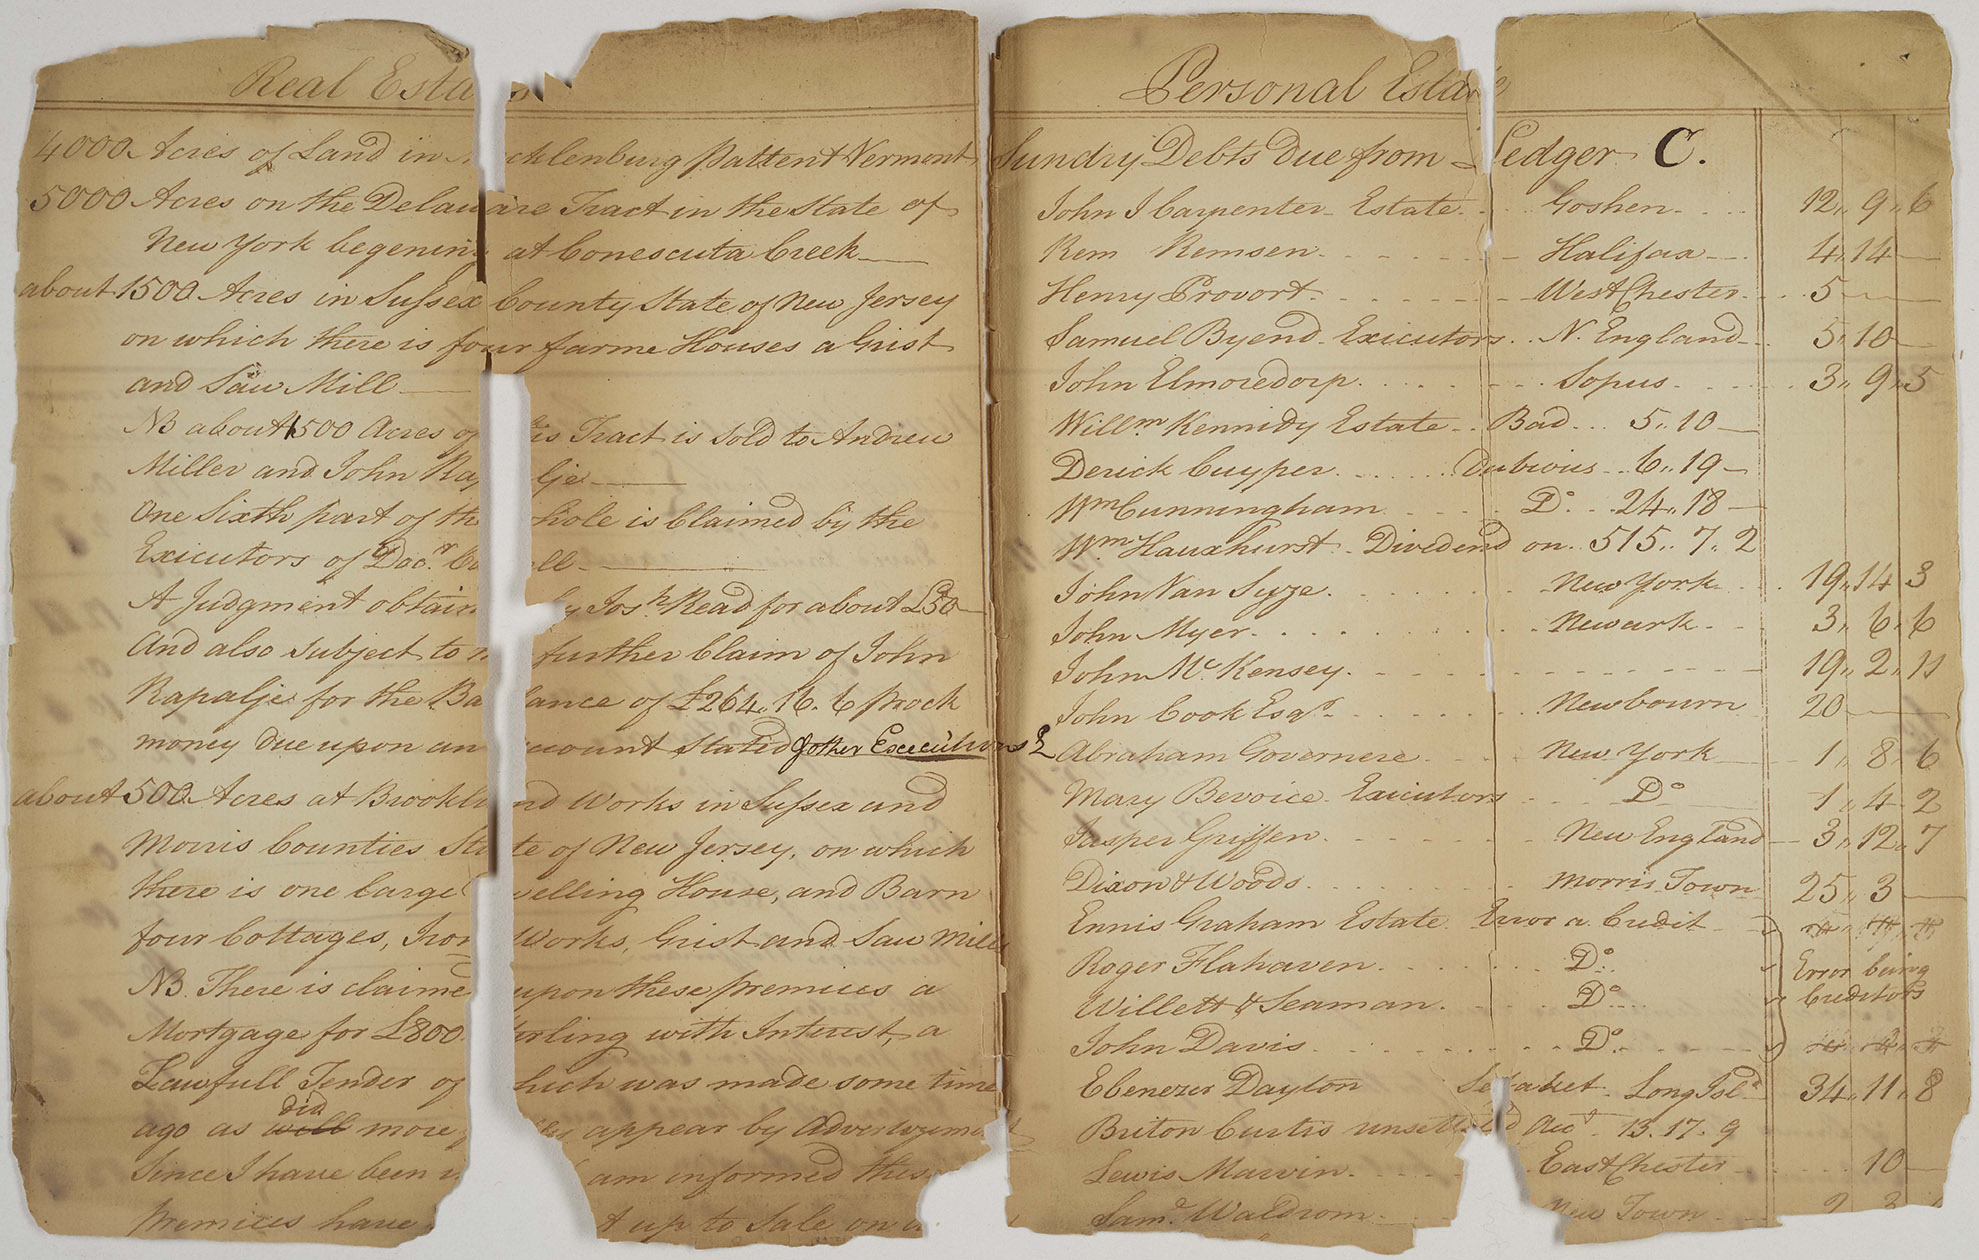 Account and inventory of real estate and personal estate of Garret Rapalje: Real Estate and Personal Estate, 1787. As you can see, he owned a lot of land in 1787.